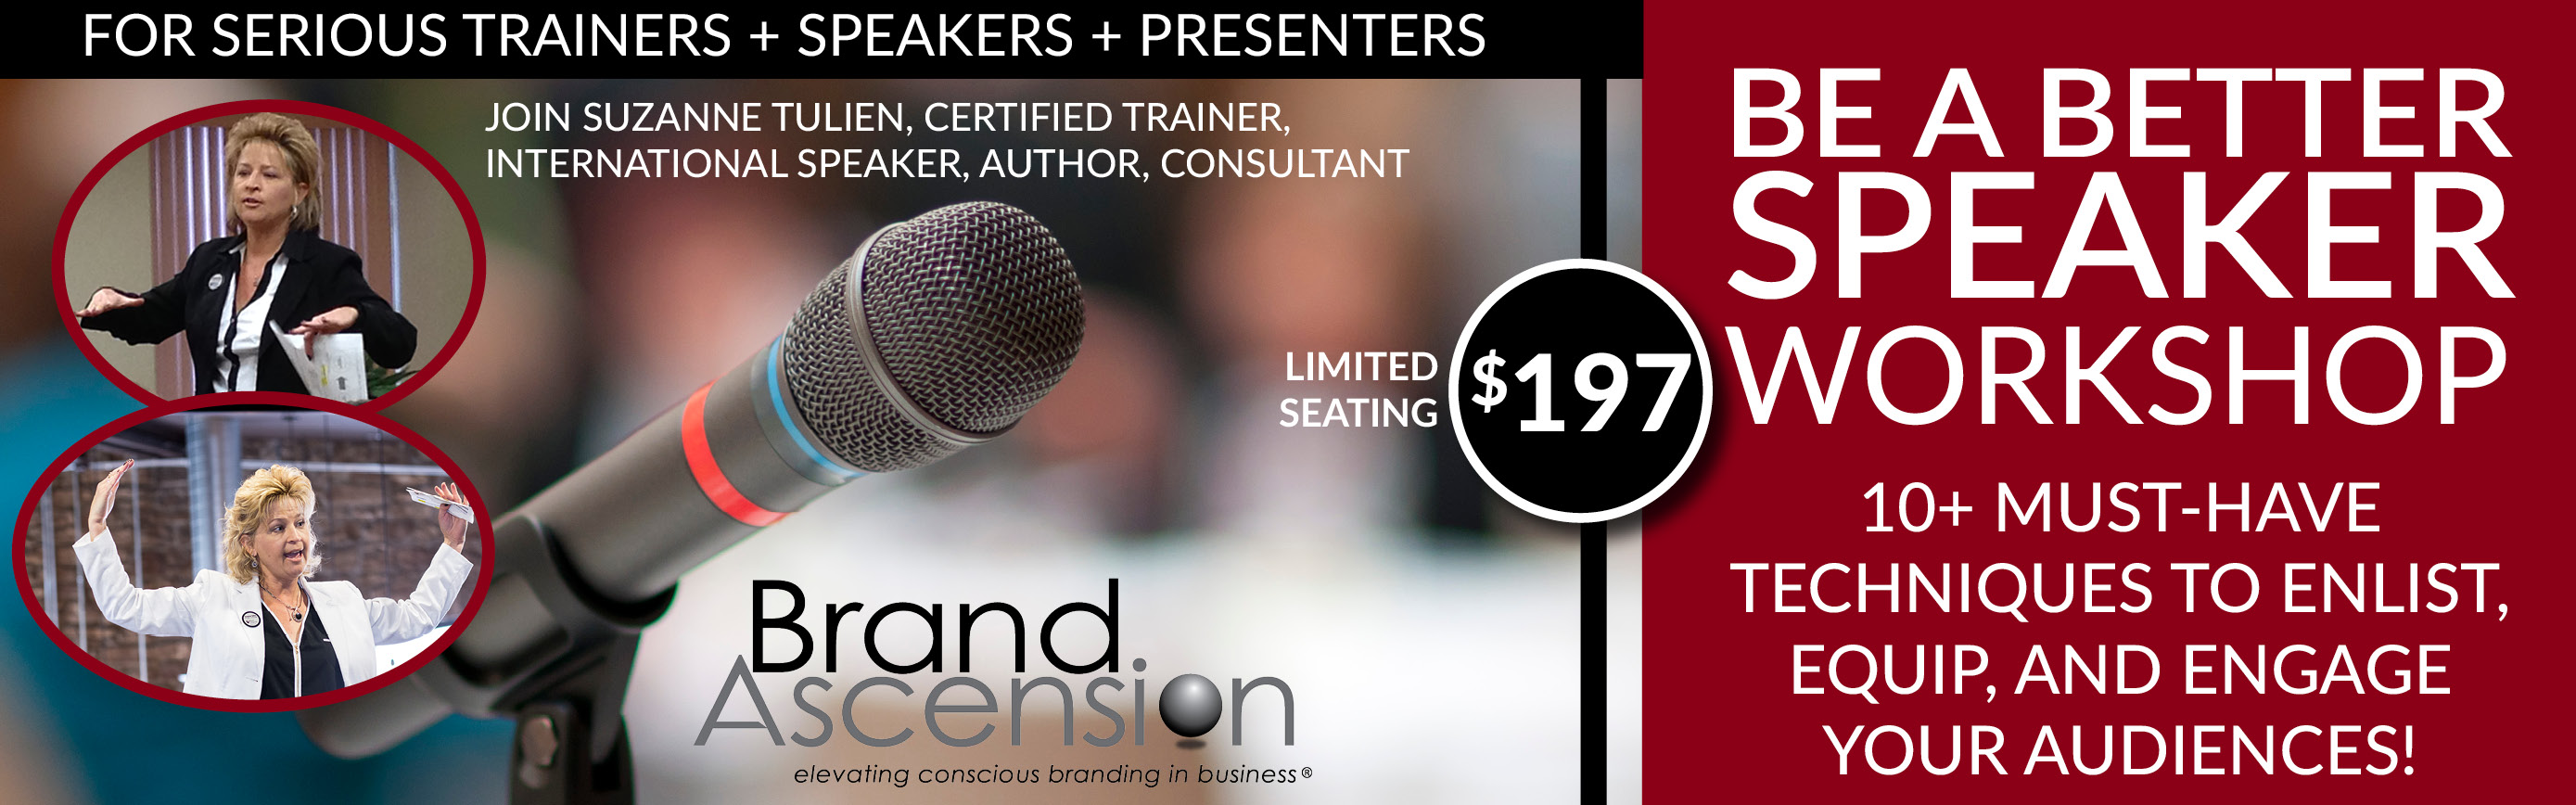 BE A BETTER SPEAKER 3 hr. WORKSHOPS